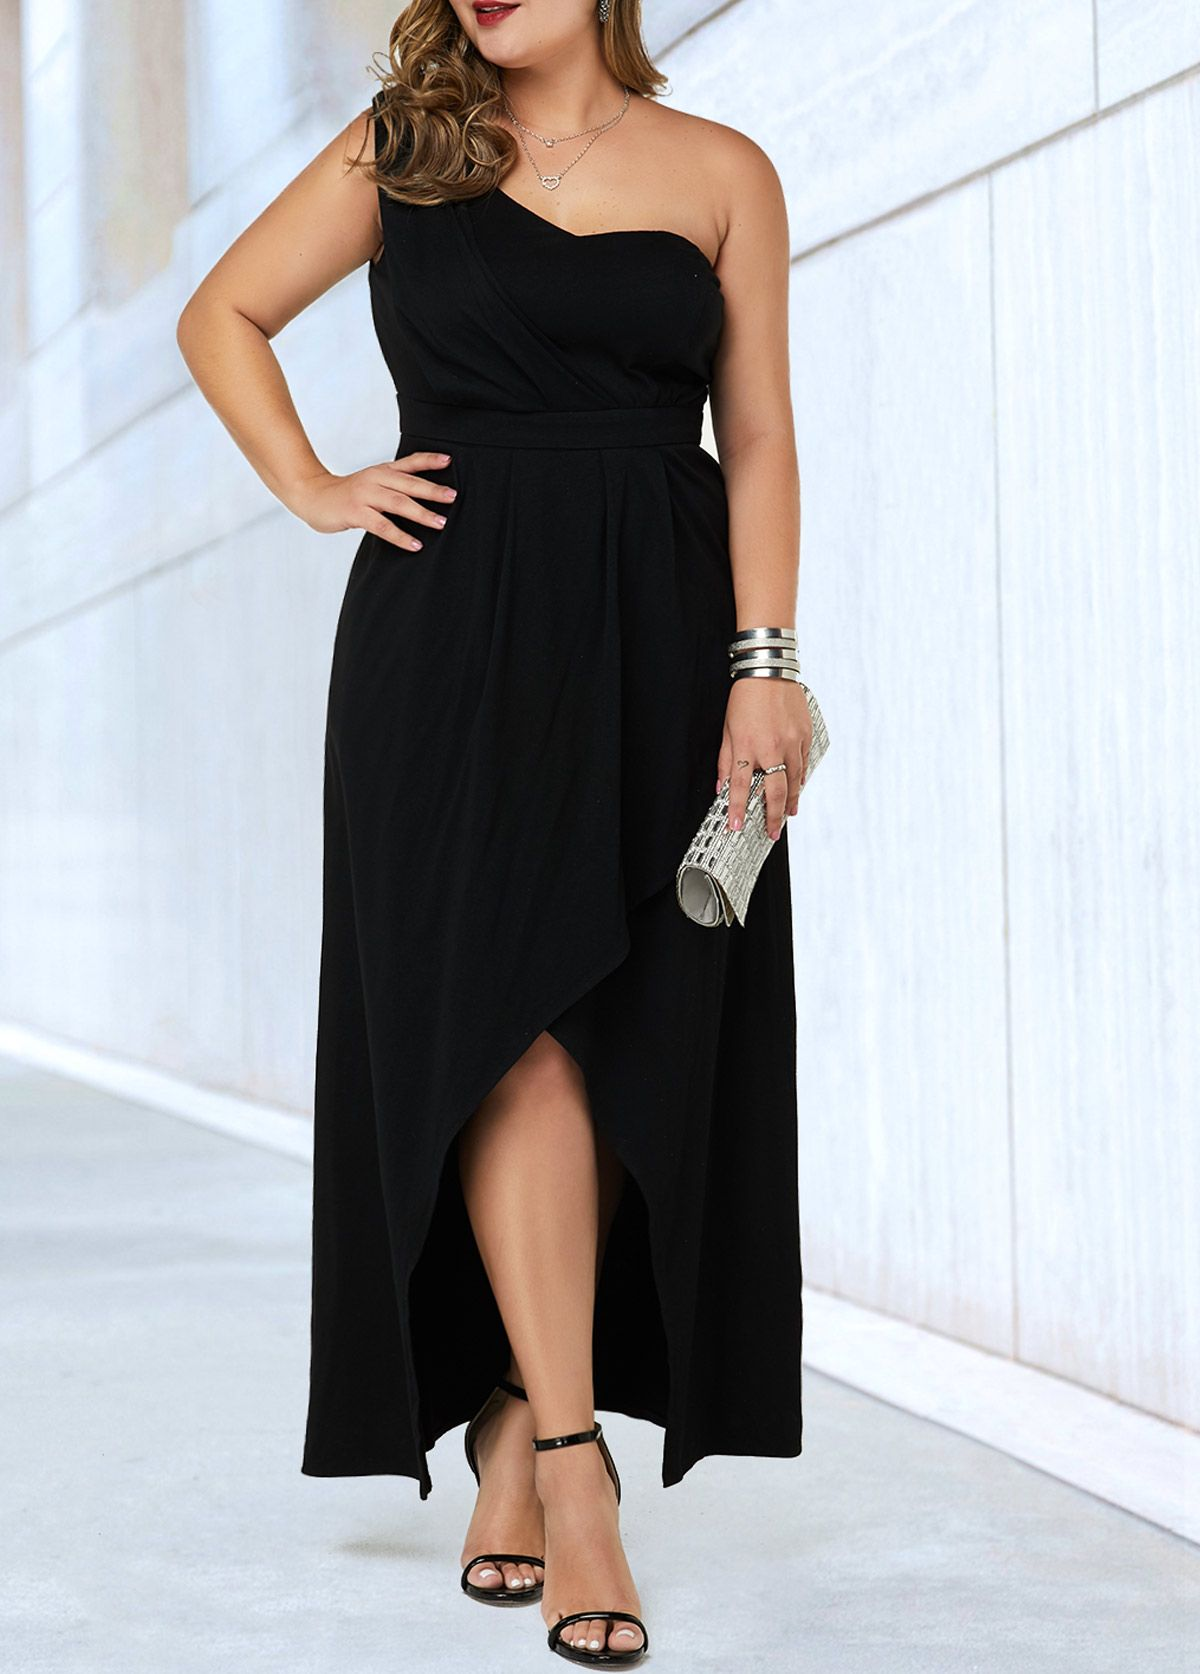 Plus Size One Shoulder Black Dress  Rosewe.com - USD $10.10  Kleider